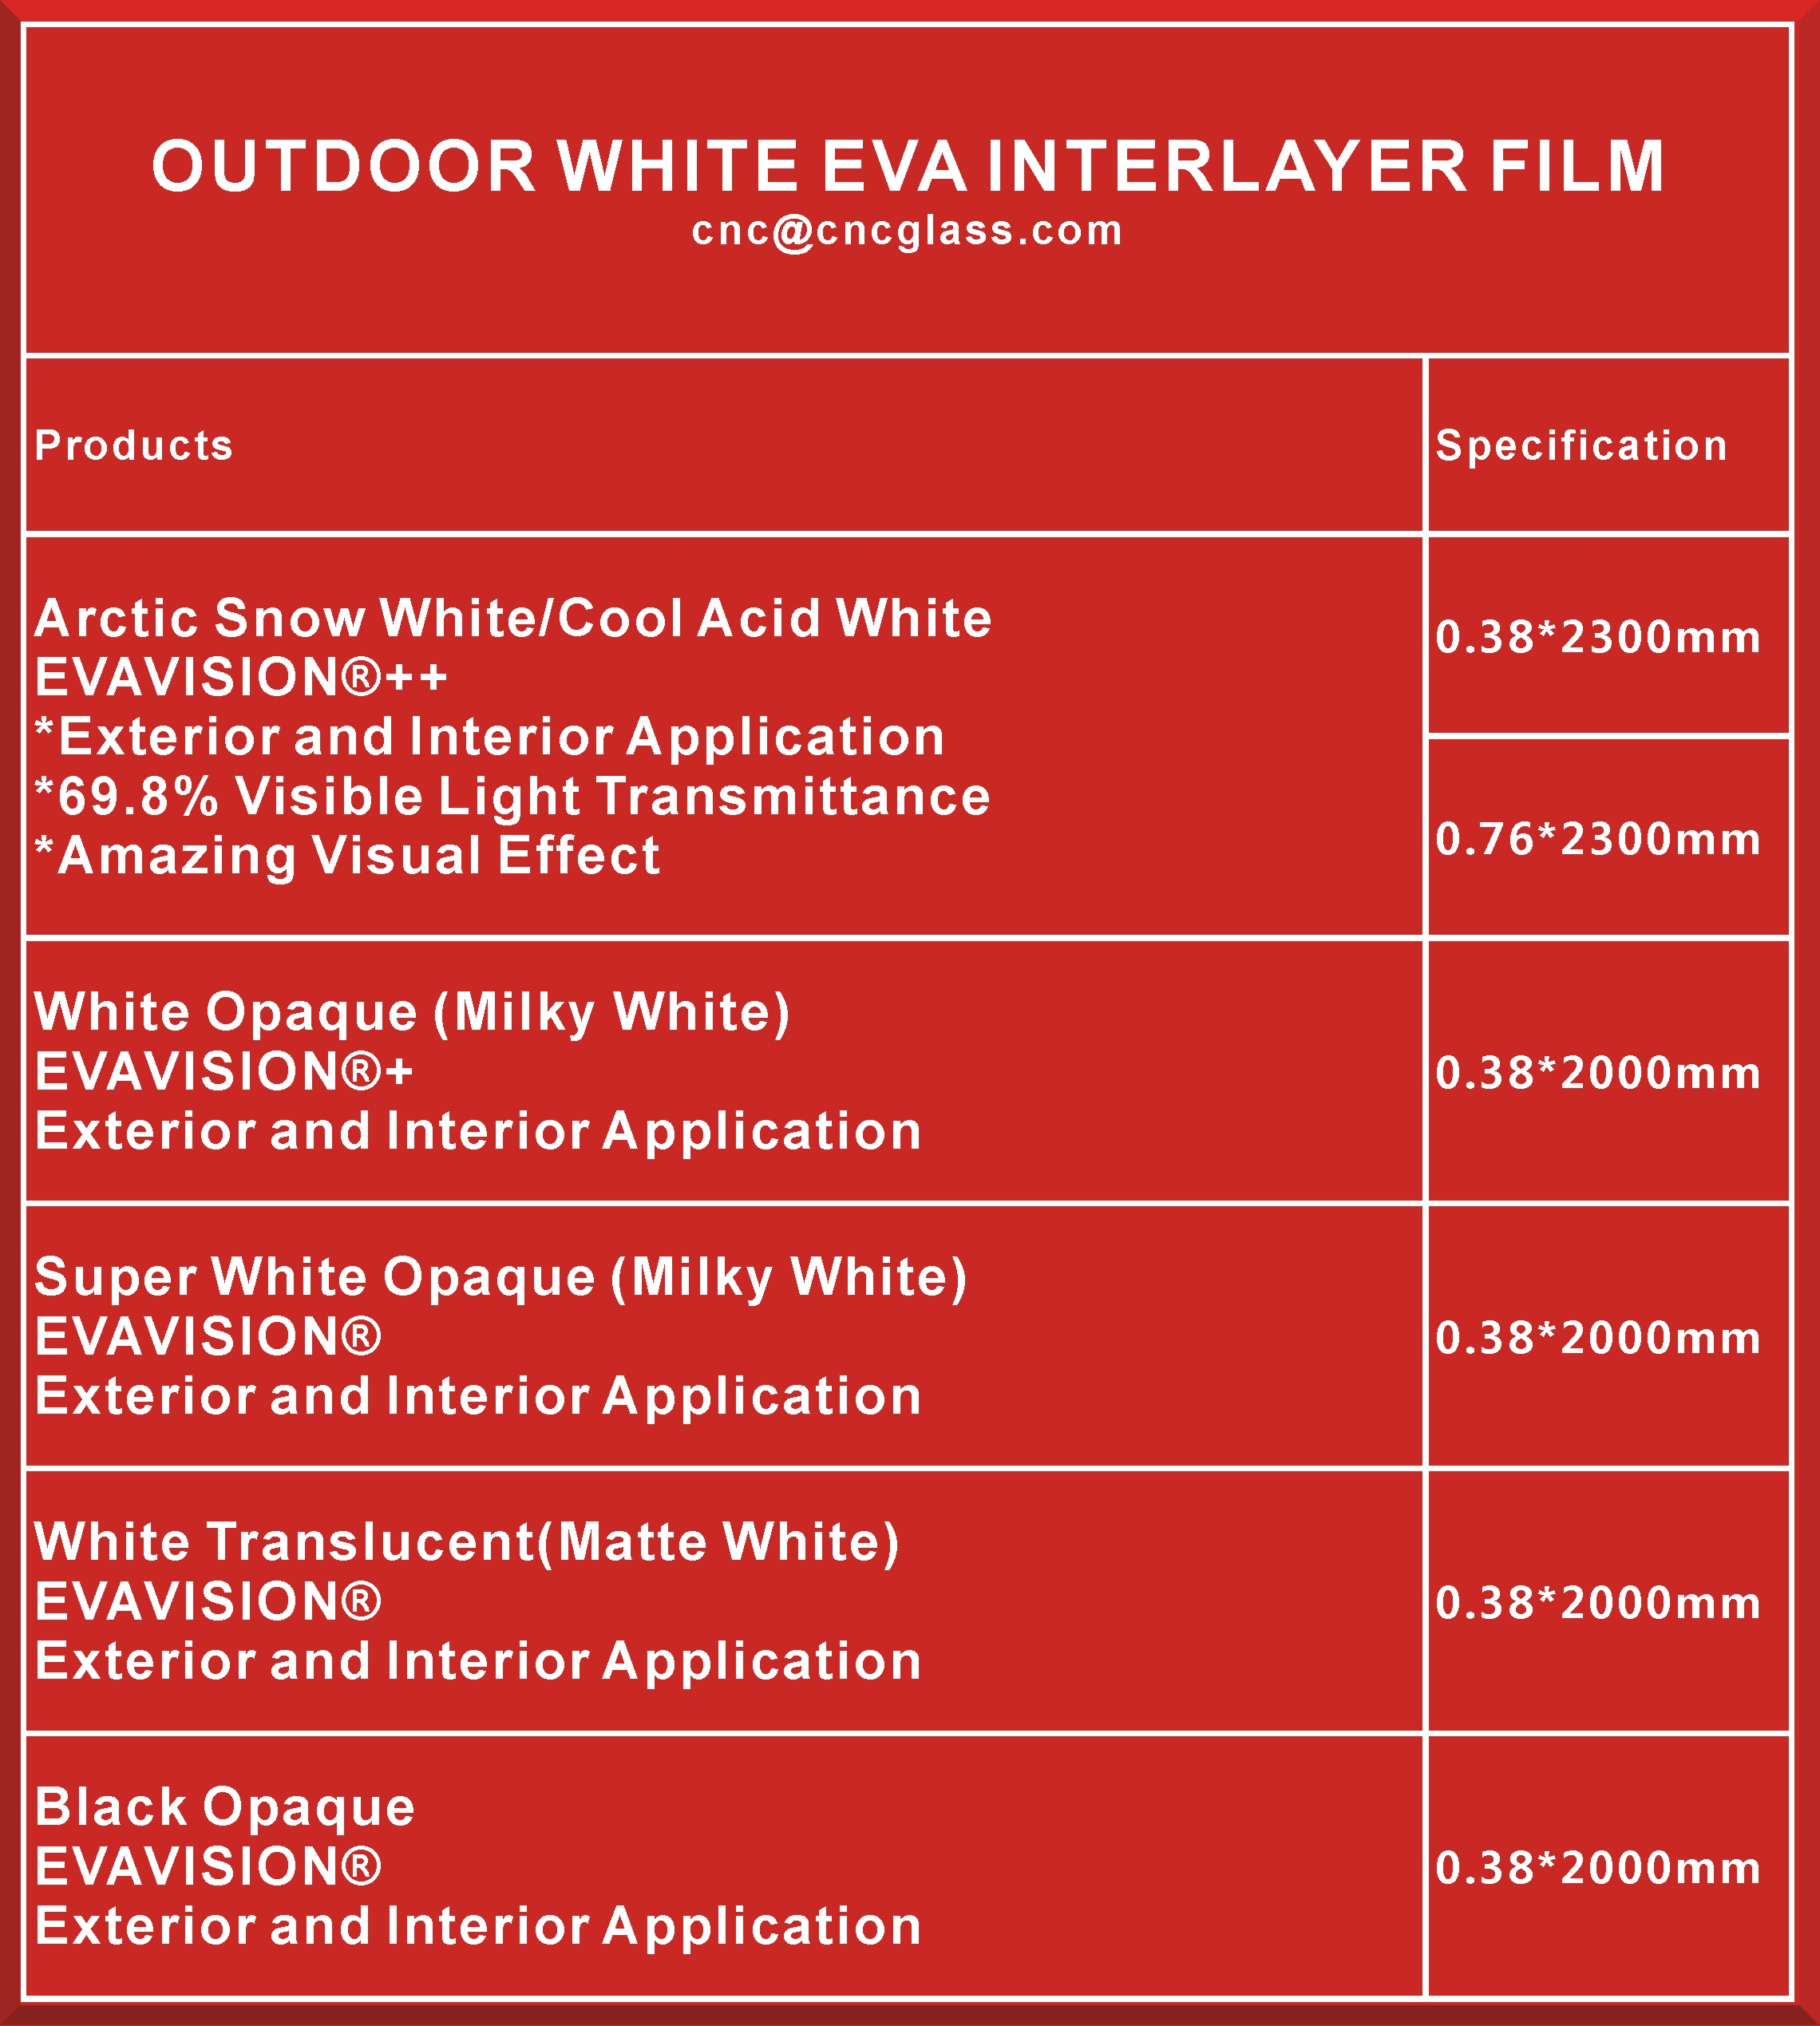 WHITE EVA INTERLAYER FILM